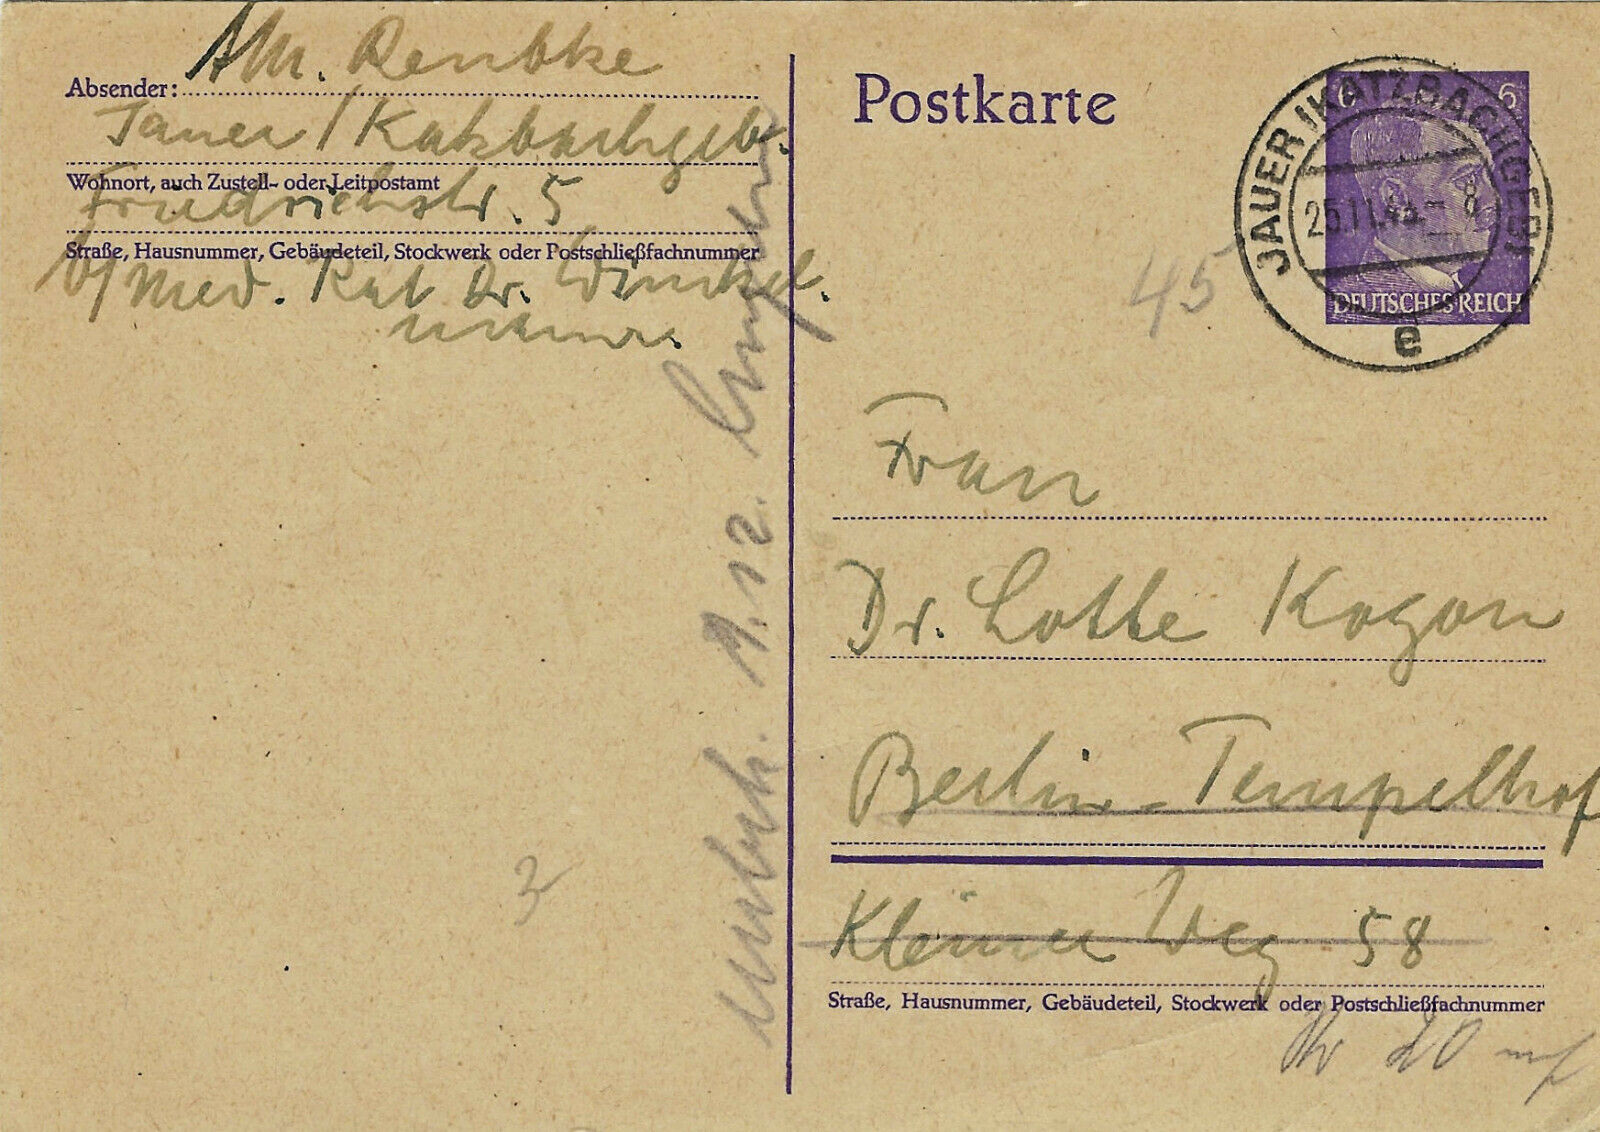 GERMANY 6pf 510, HITLER HEAD STAMP On POST CARD LOT 324 - $4.50